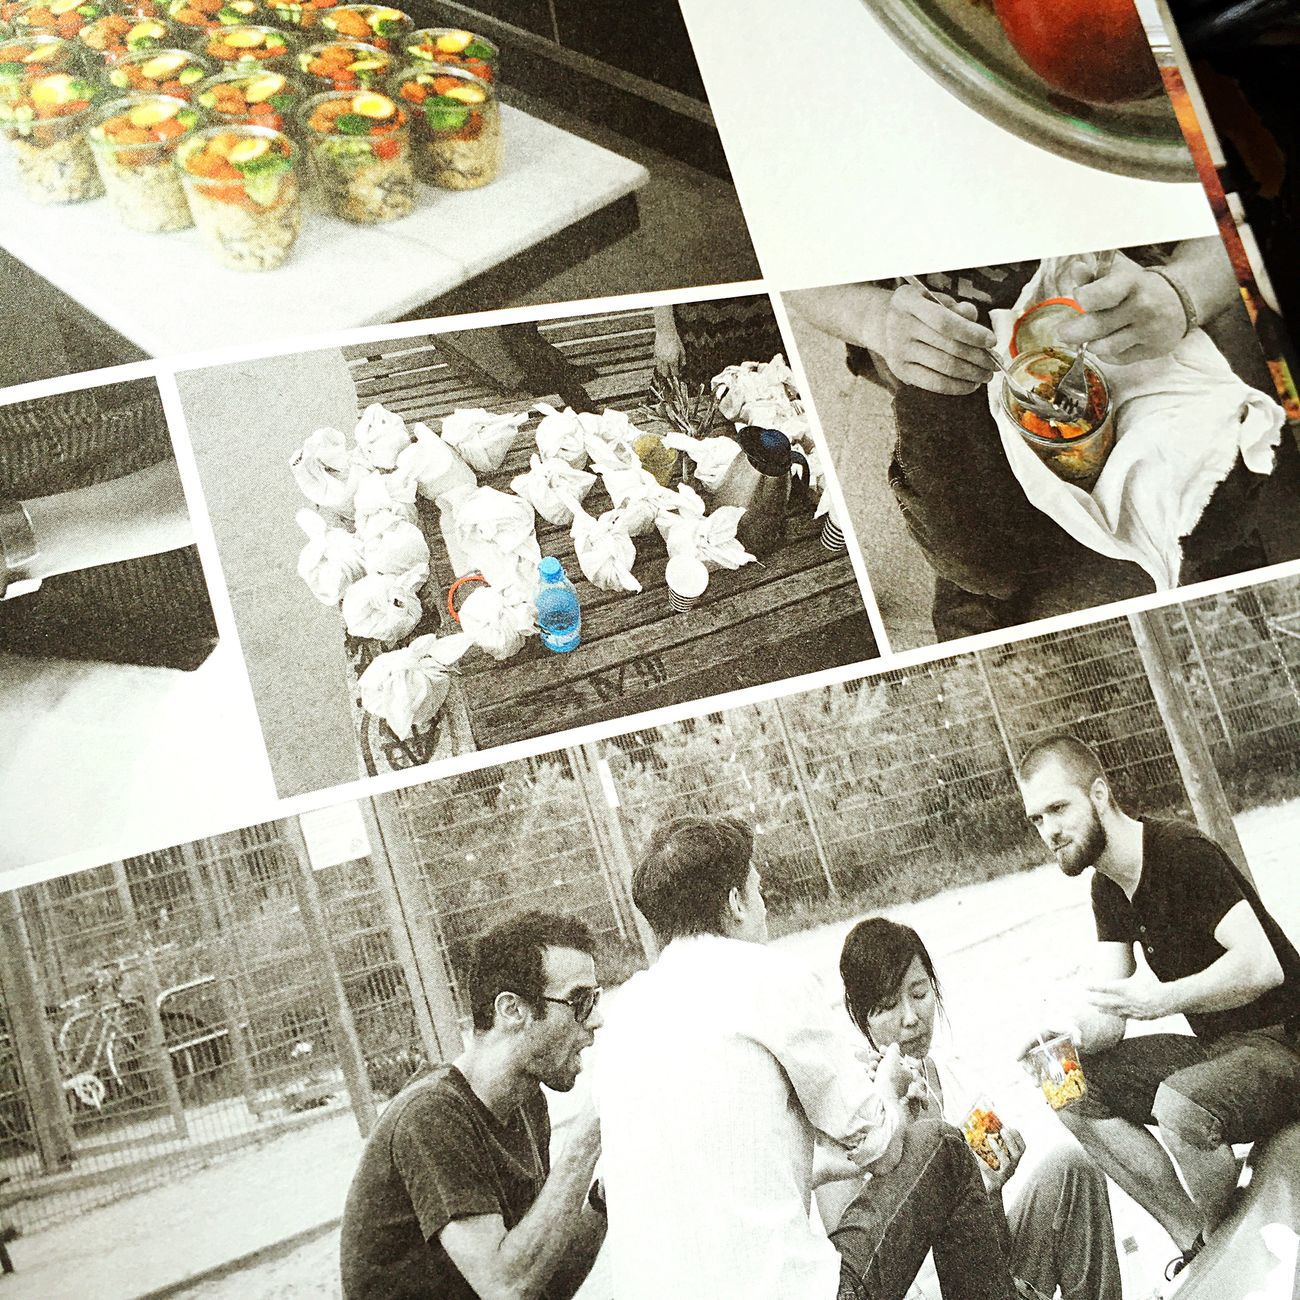 Favoritethings Favourite Artbook Phaidon Olafur Eliasson Thekitchin Lunch Box Lunch Time! Lunch Break